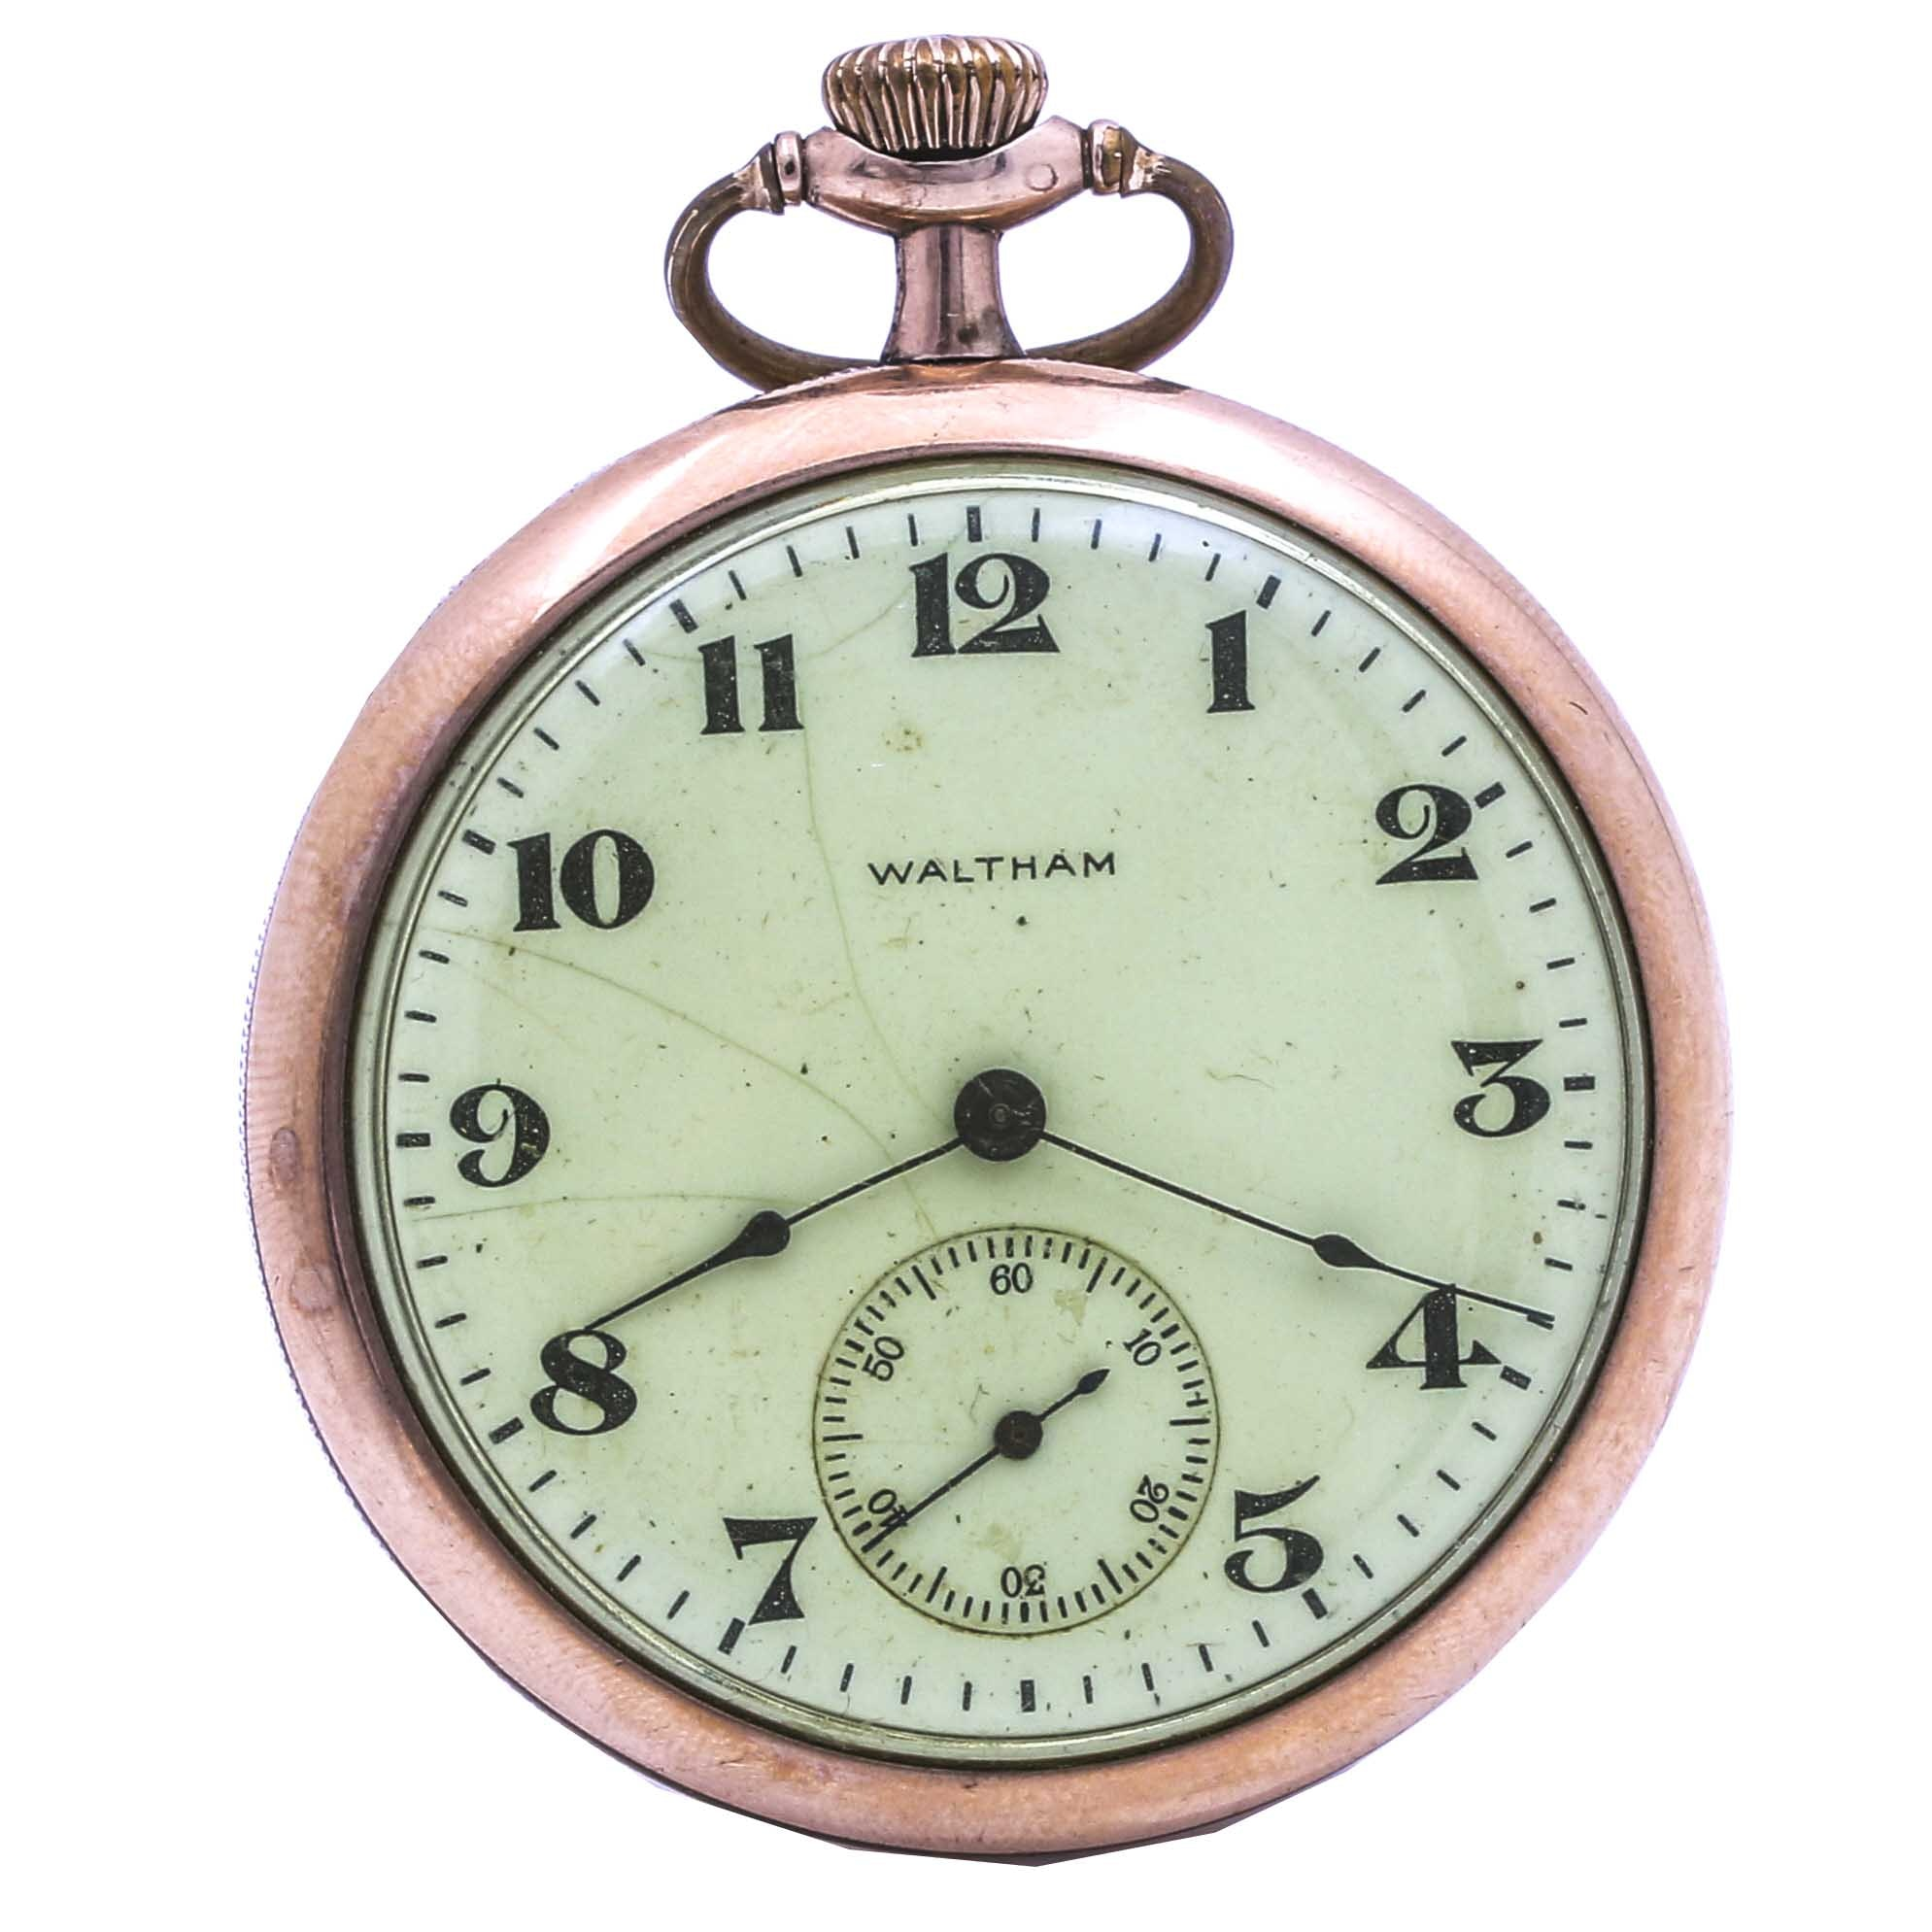 Waltham Gold Filled Open Face Pocket Watch